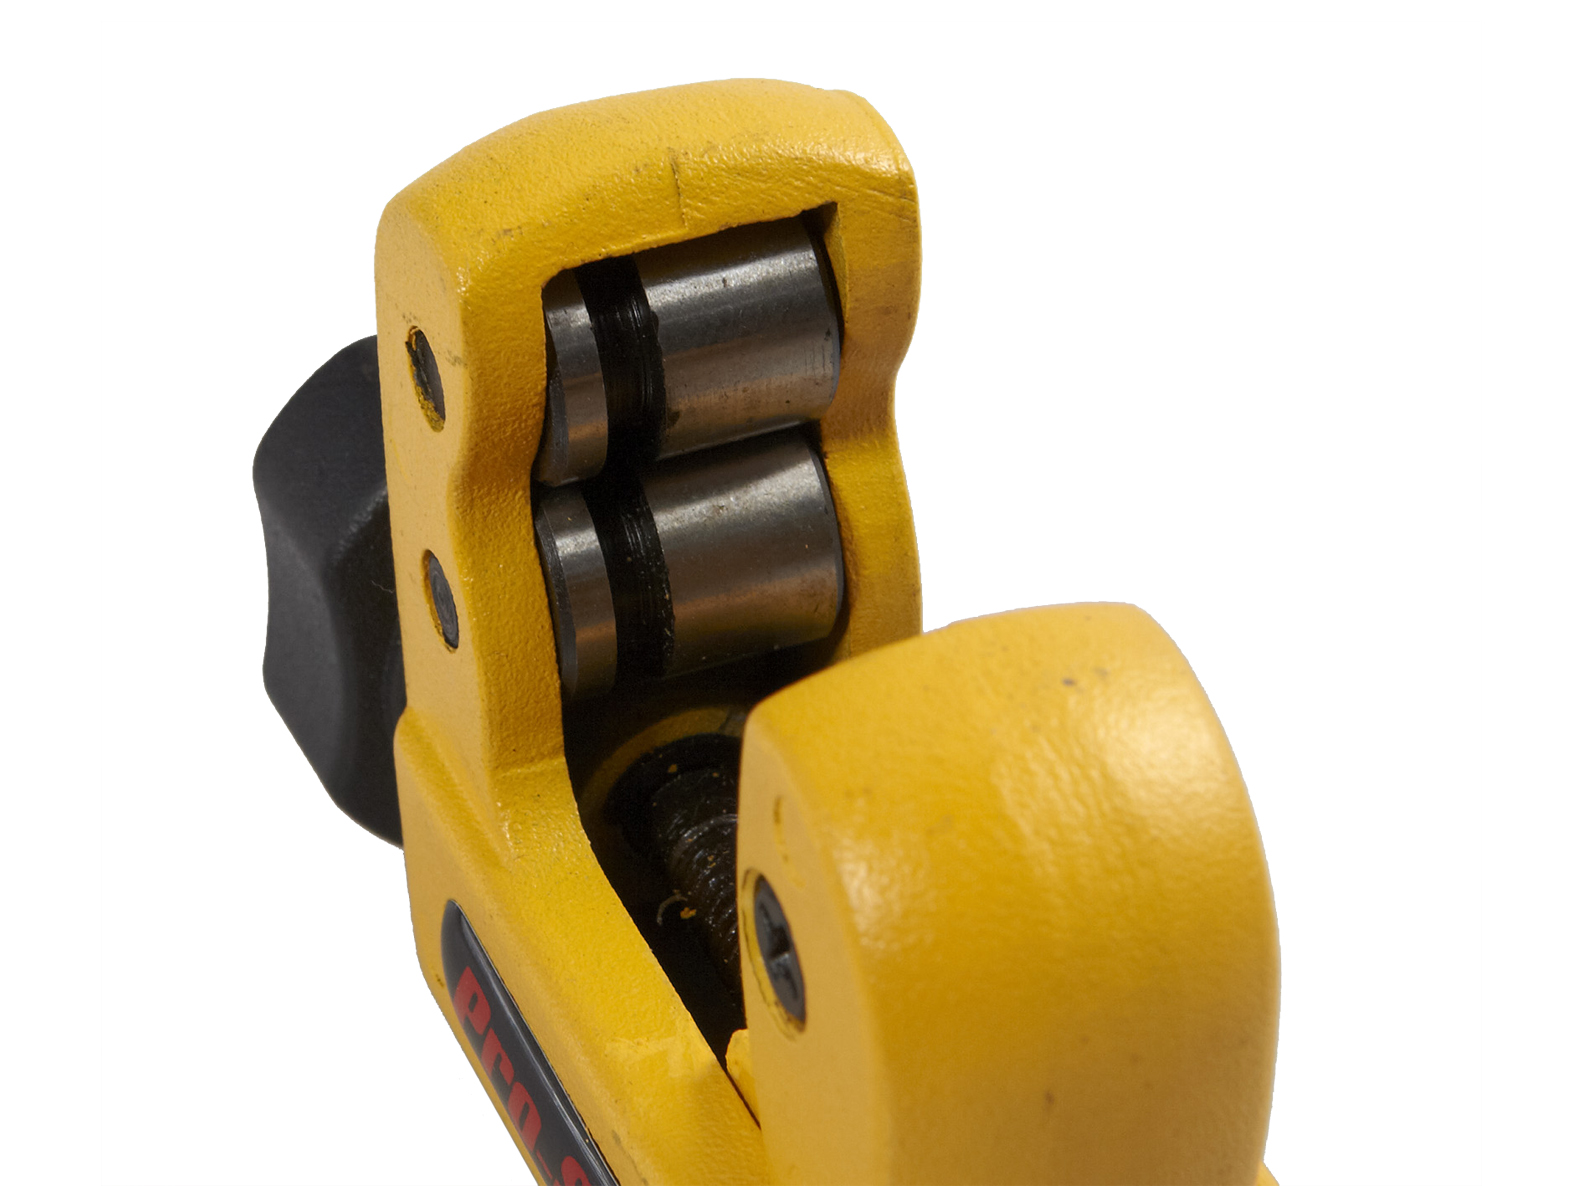 Pro-Set TCT174 Heavy Duty Series Tube Cutter 1/8 in to 1 1/8 in